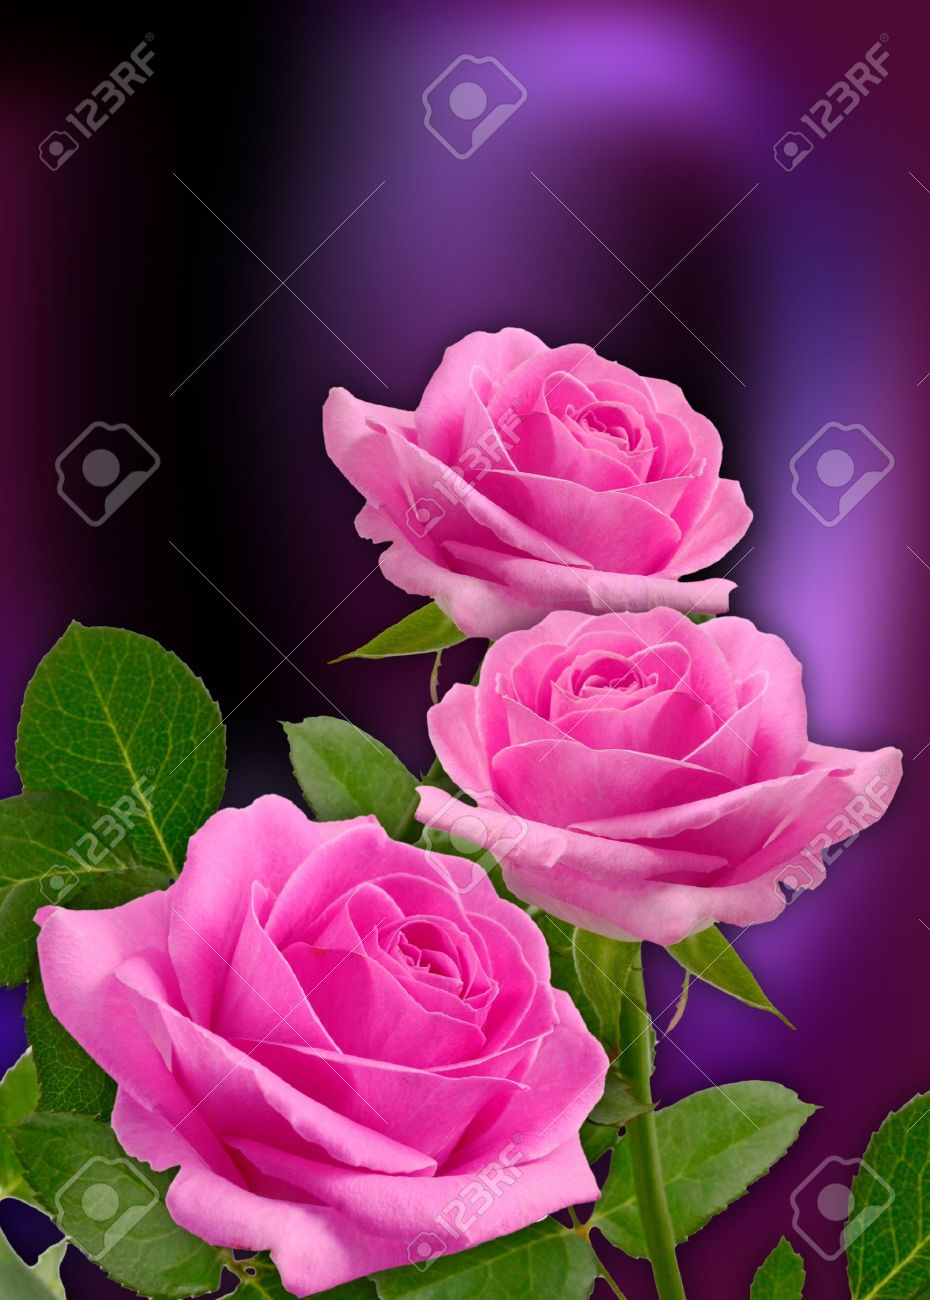 Card with pink roses - 15036155